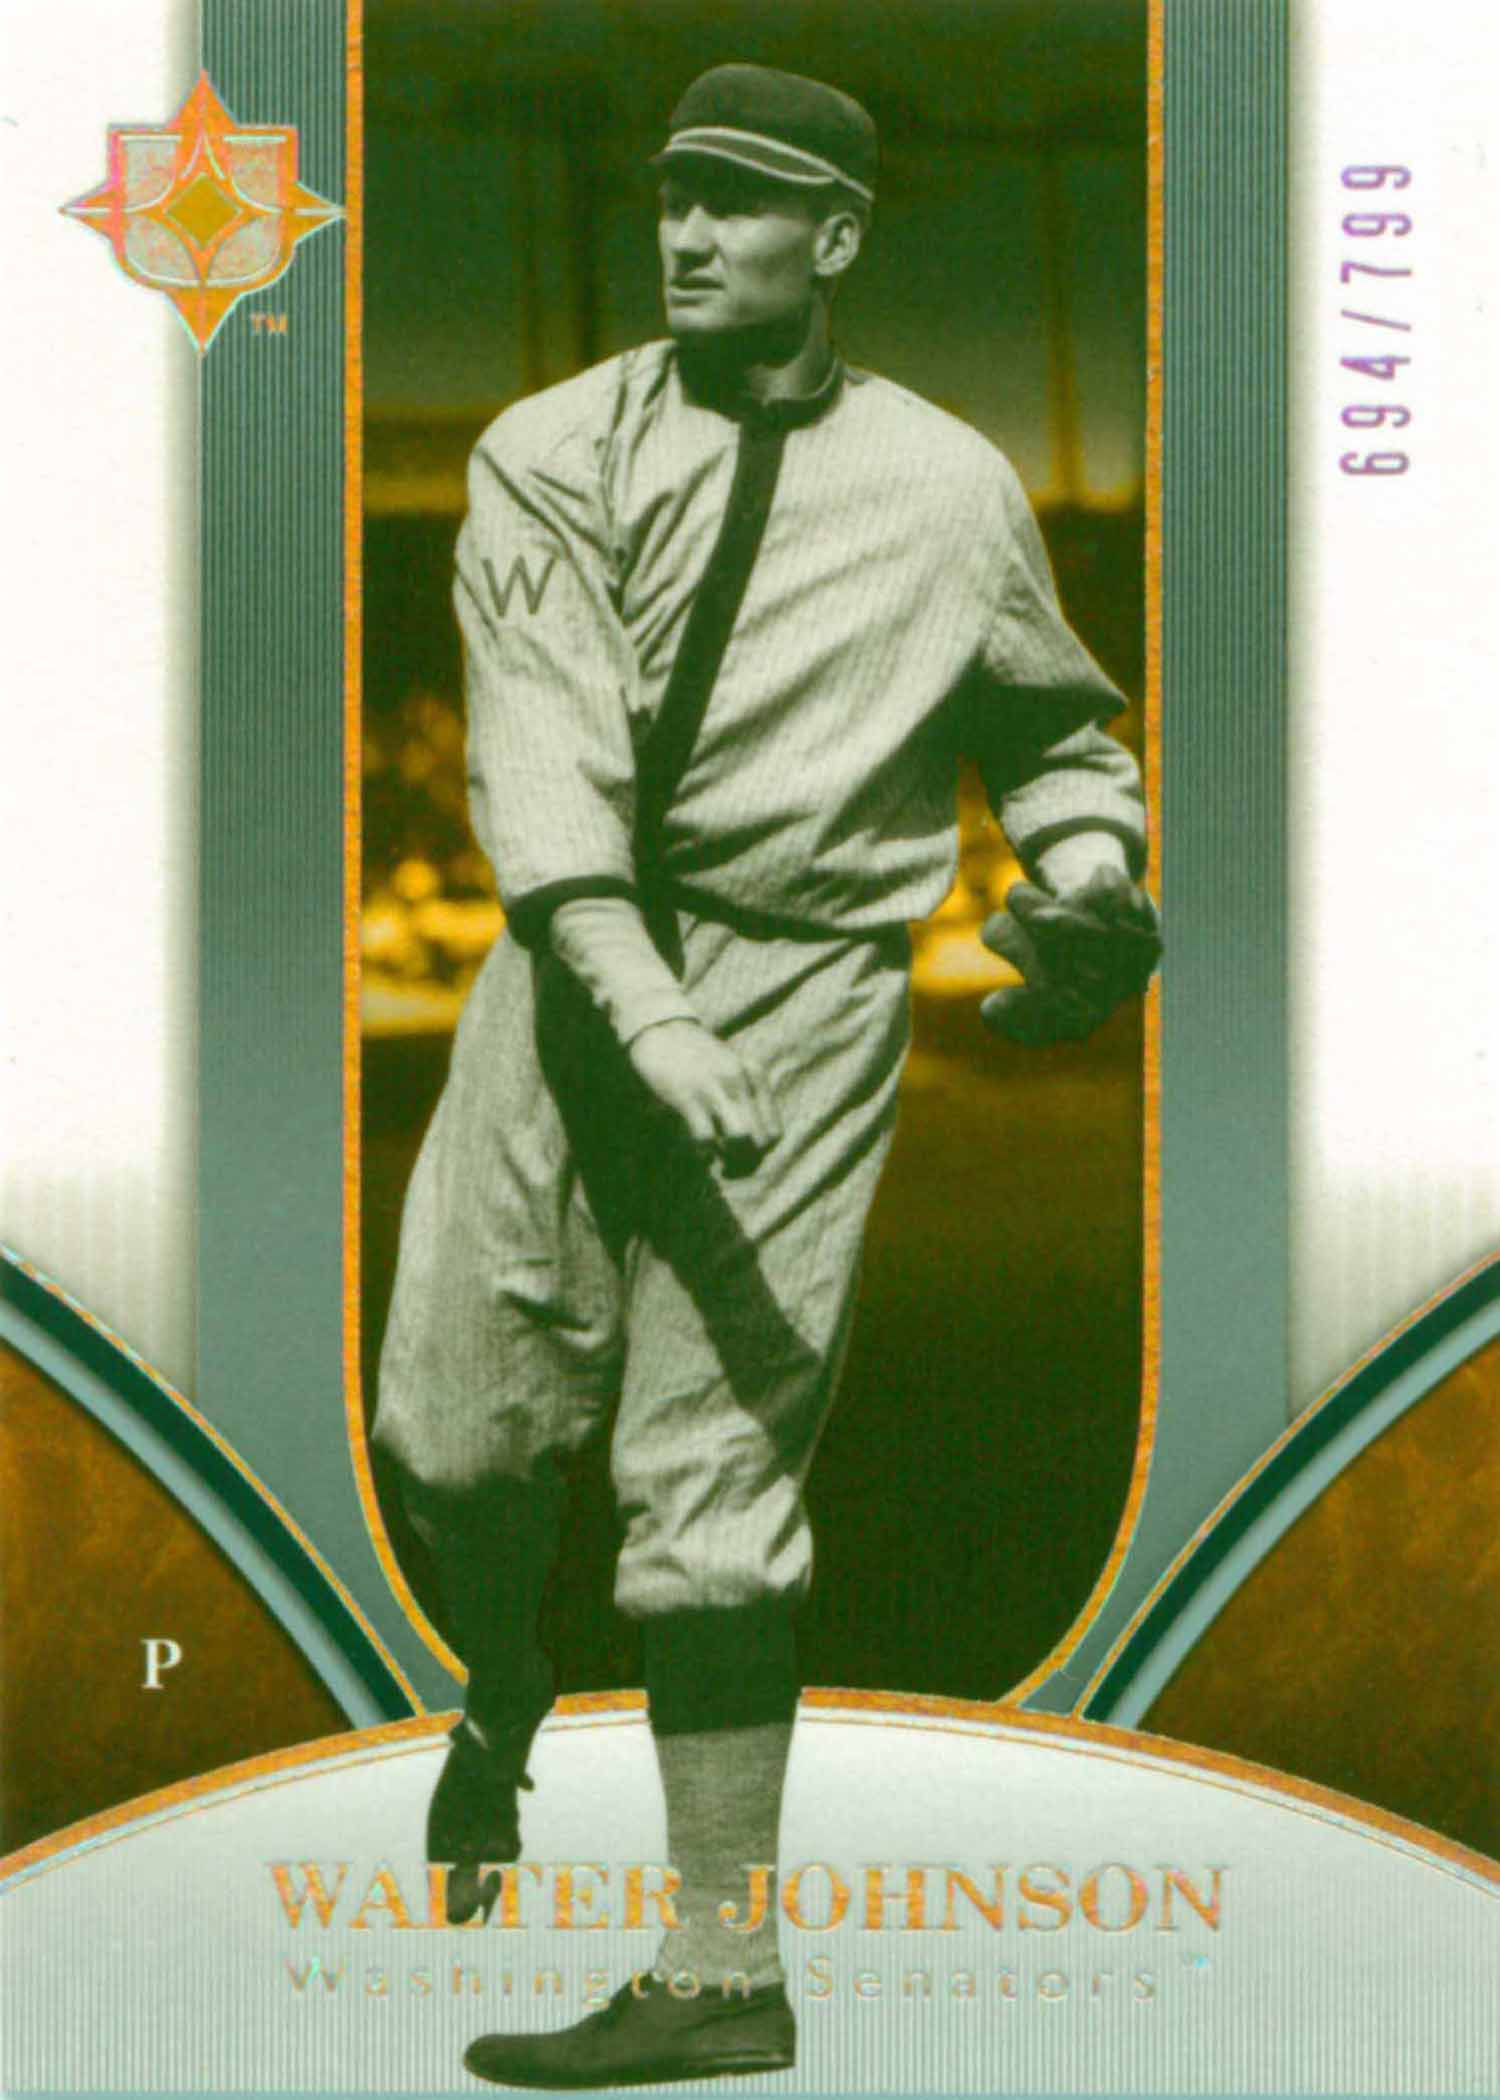 2004 Topps Tribute Hall of Fame